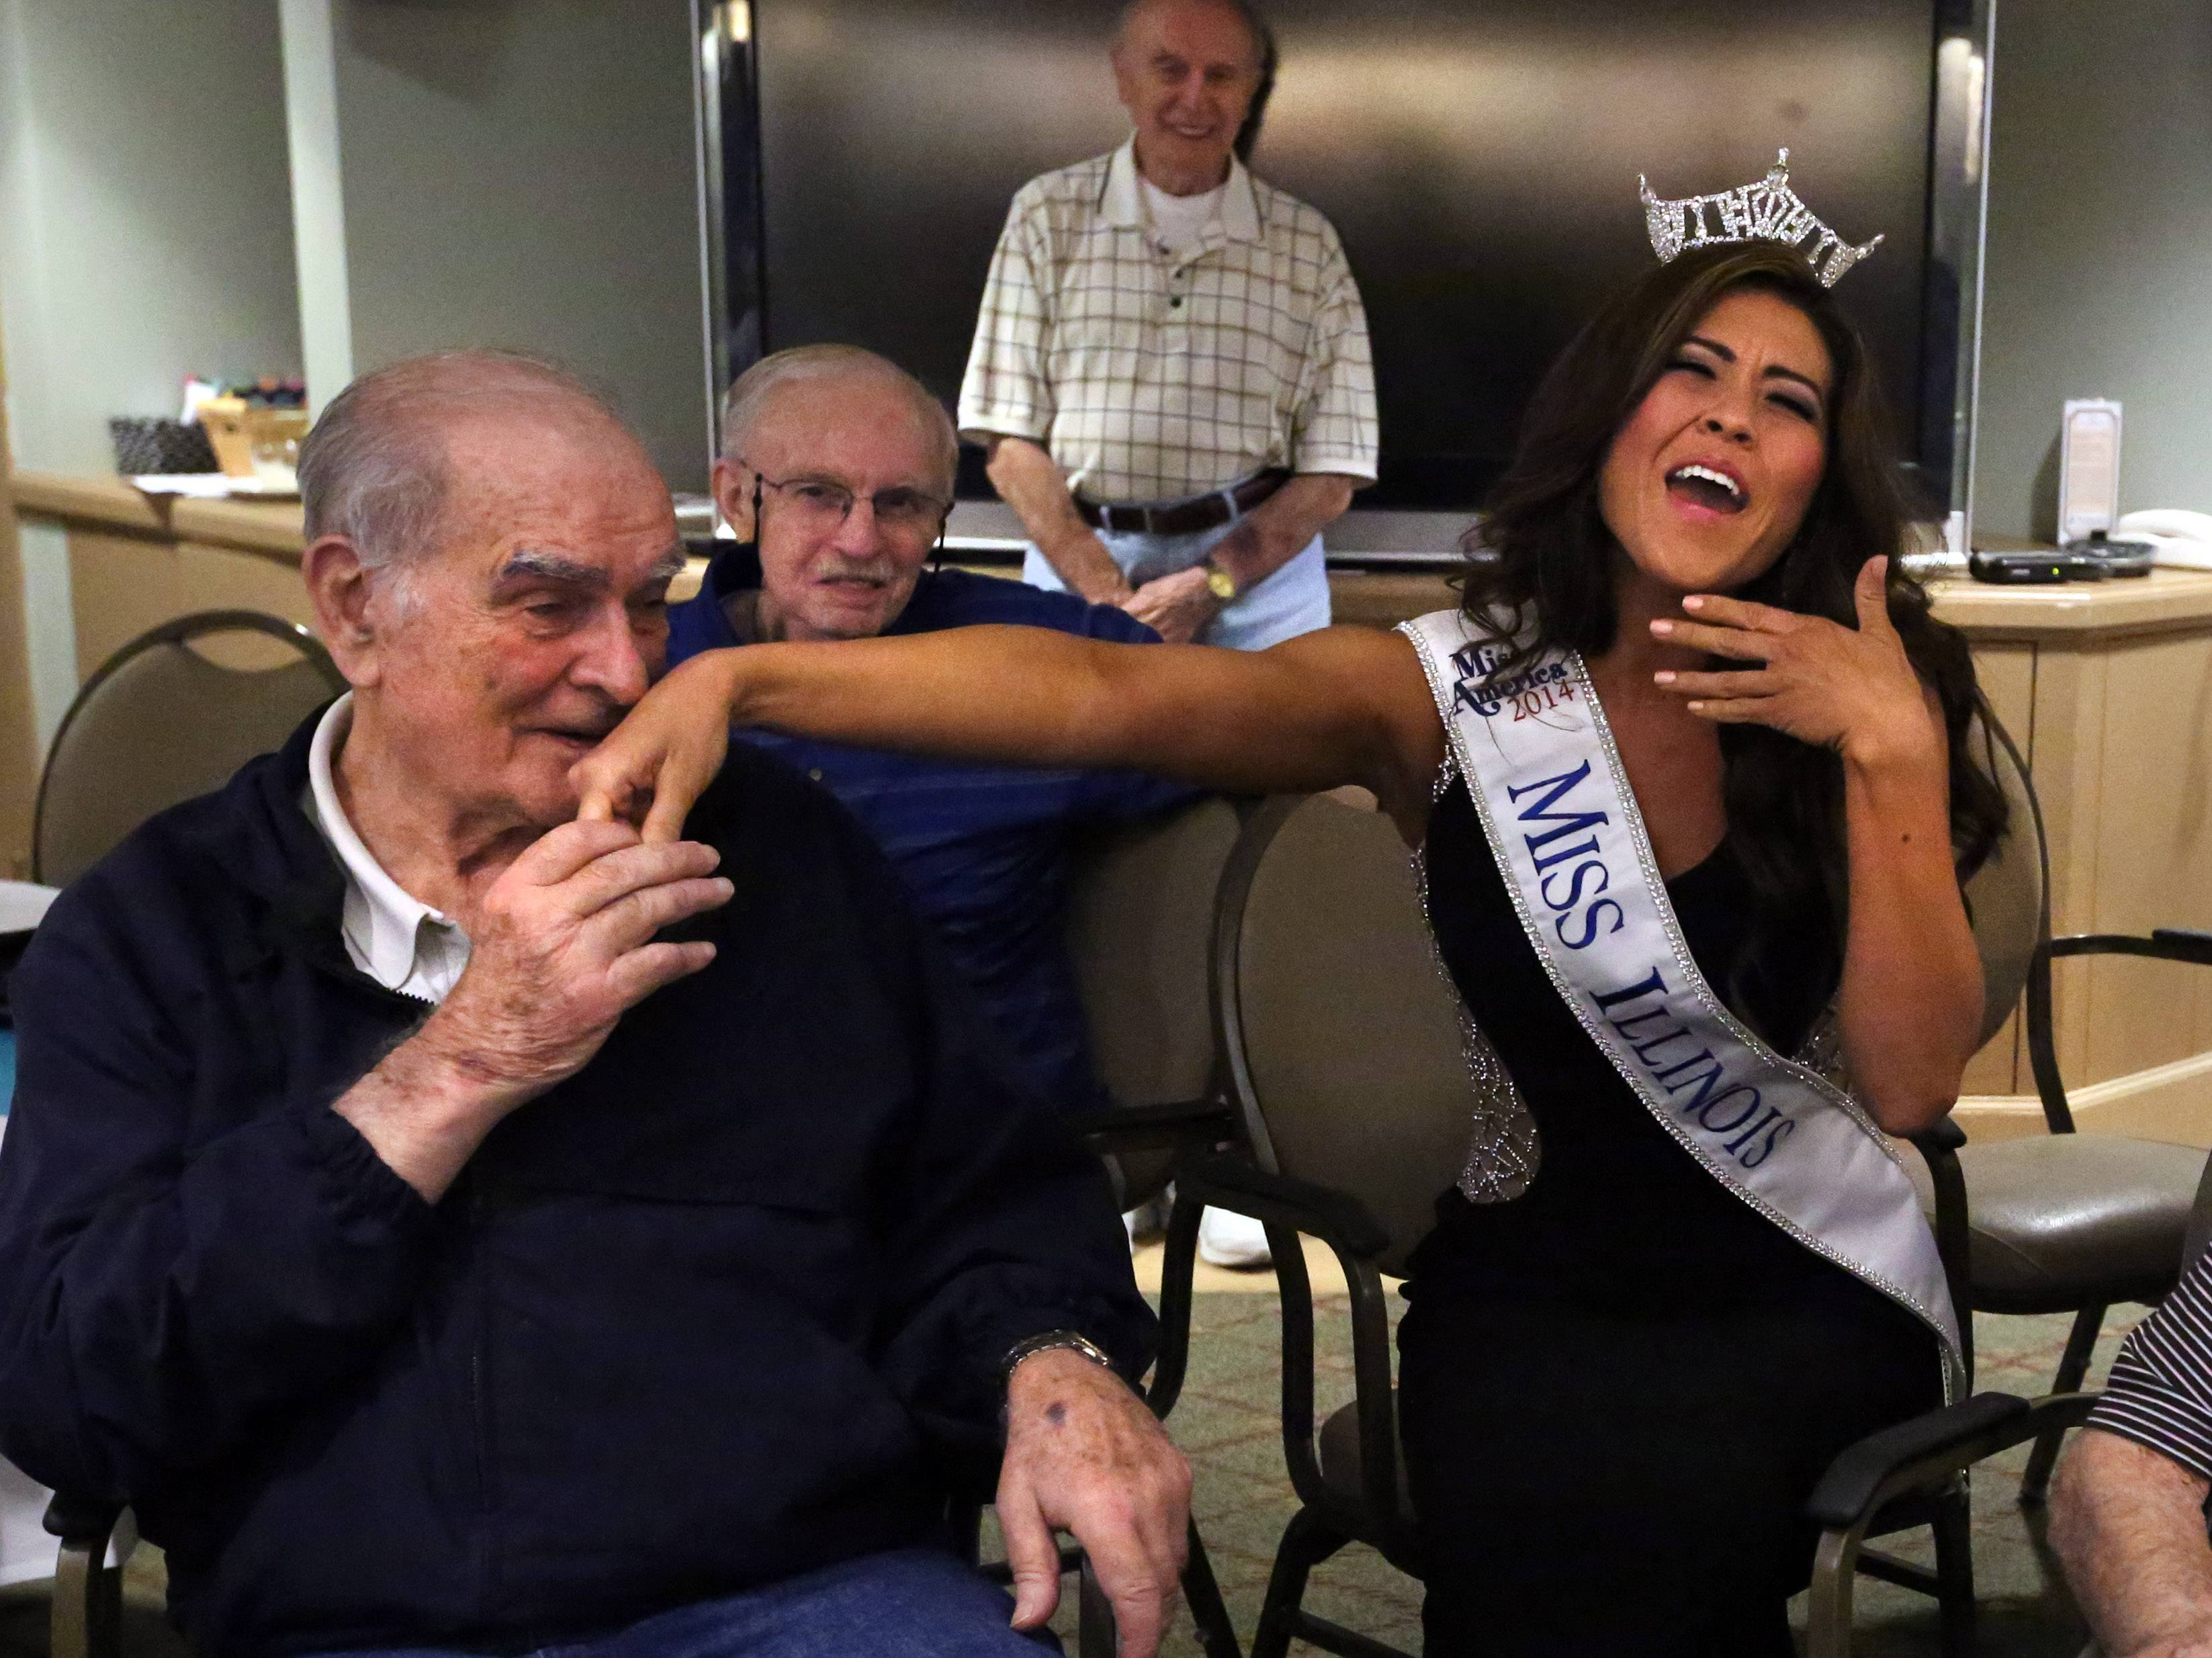 "Recently crowned Miss Illinois Marisa Buchheit reacts to a spontaneously kiss on the hand as she sings Il bacio, ""The kiss"" in Italian, at Friday's Friends for Life happy hour at Brookdale senior living home in Vernon Hills on Friday."